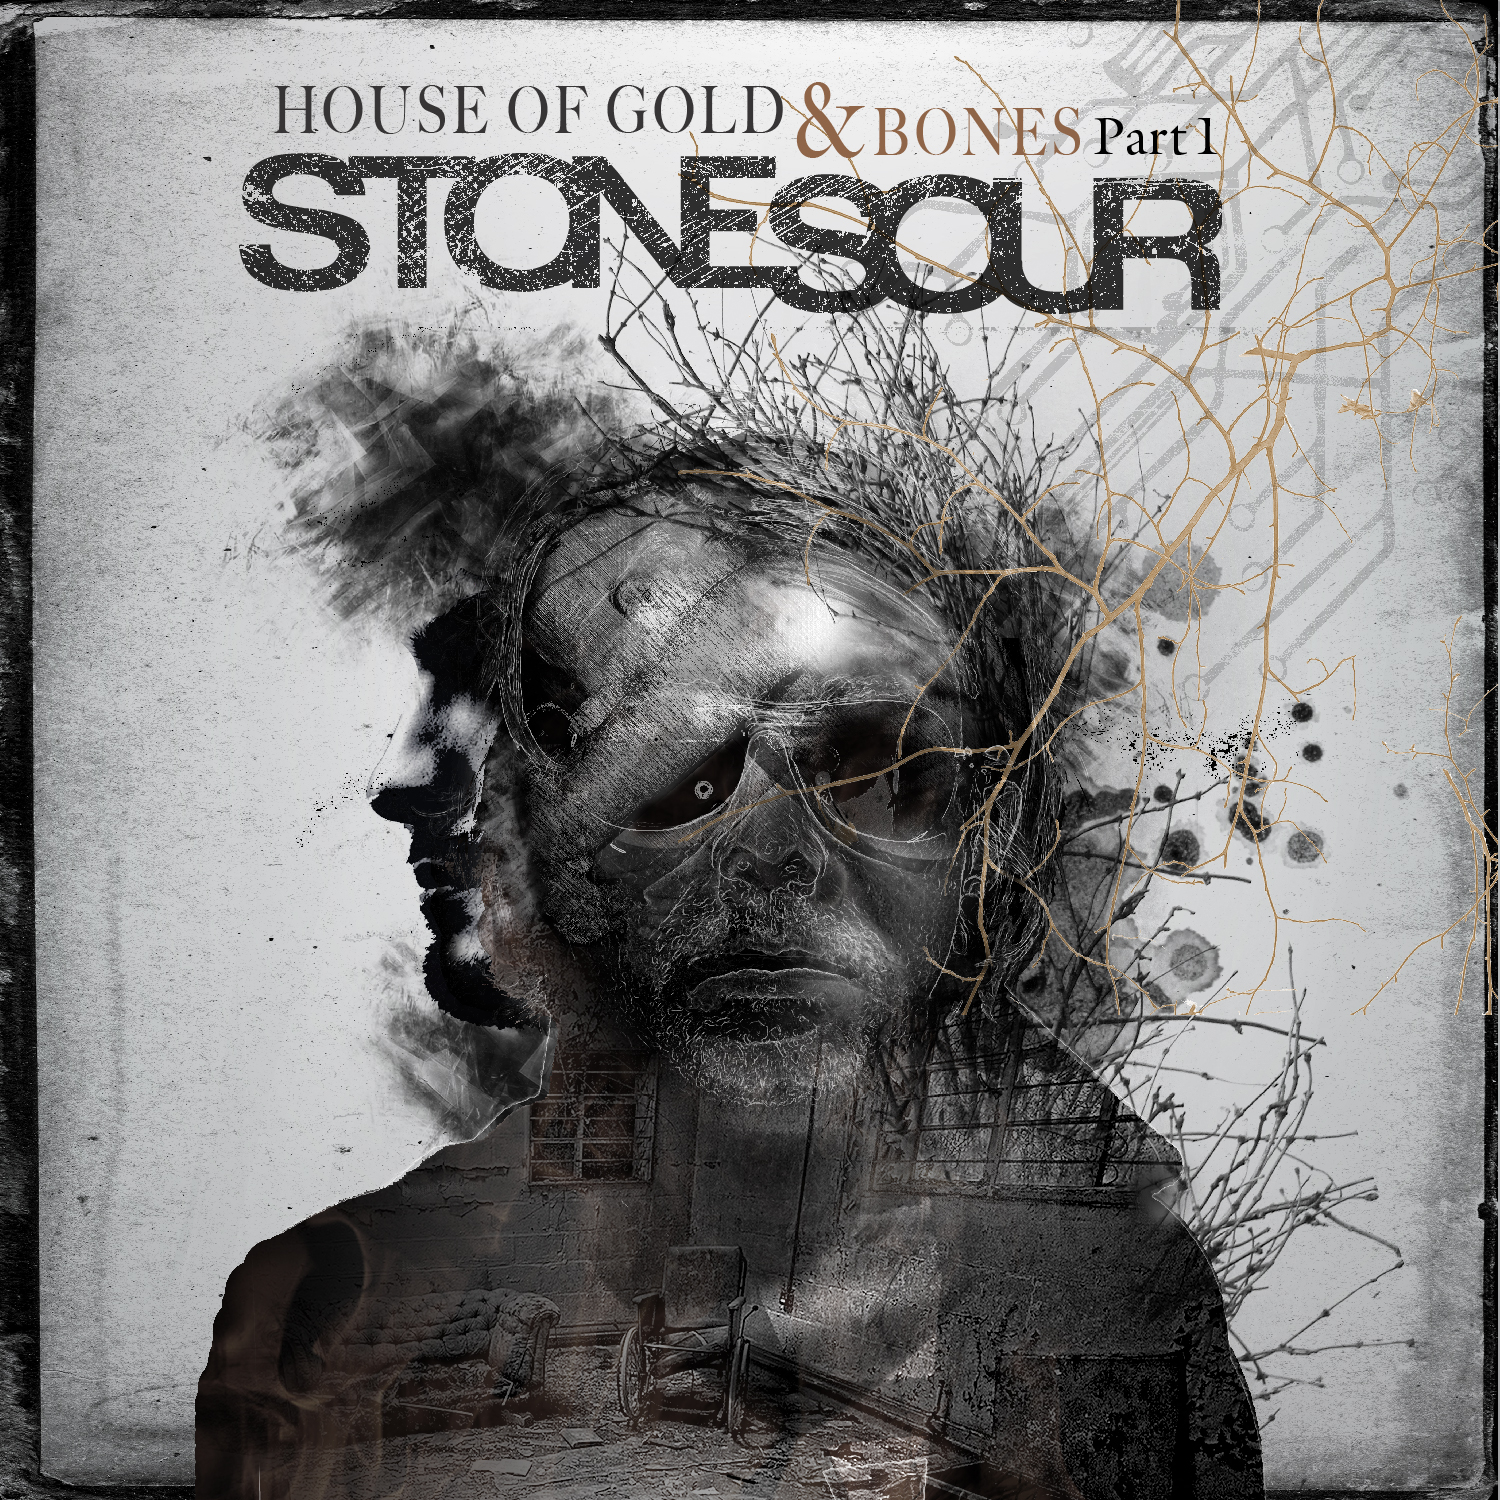 House of Gold & Bones - Part 1 (Stone Sour)